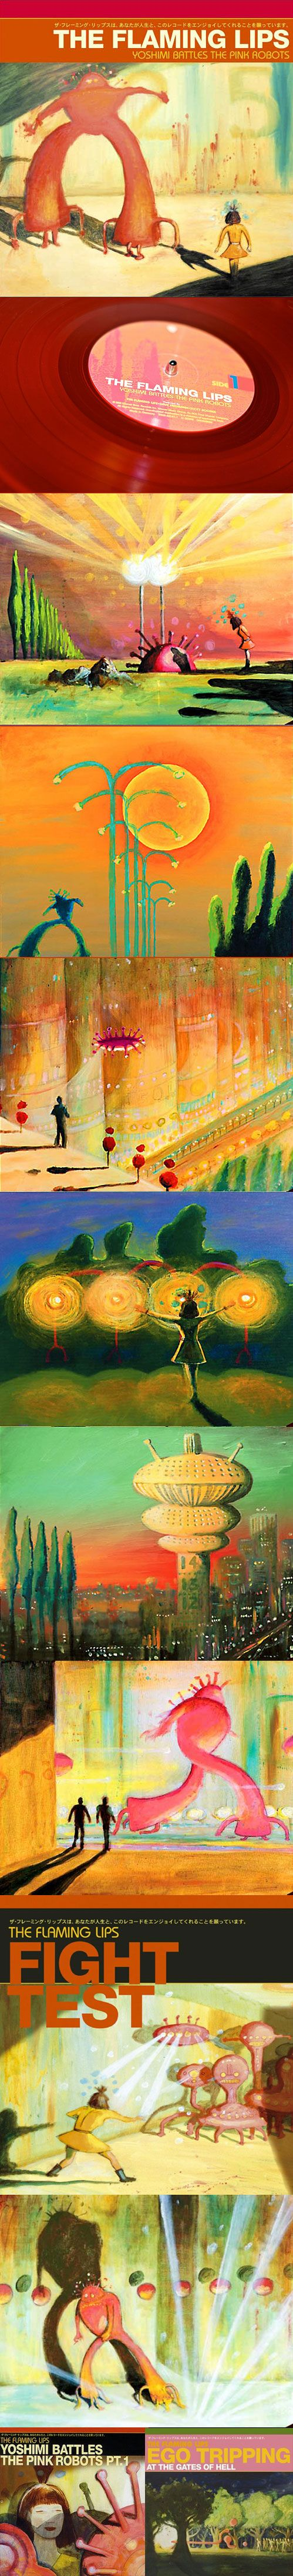 """Flaming Lips - 2002 - """"Yoshimi Battles The Pink Robots"""" Complete Covers Collection - George Salisbury -----"""